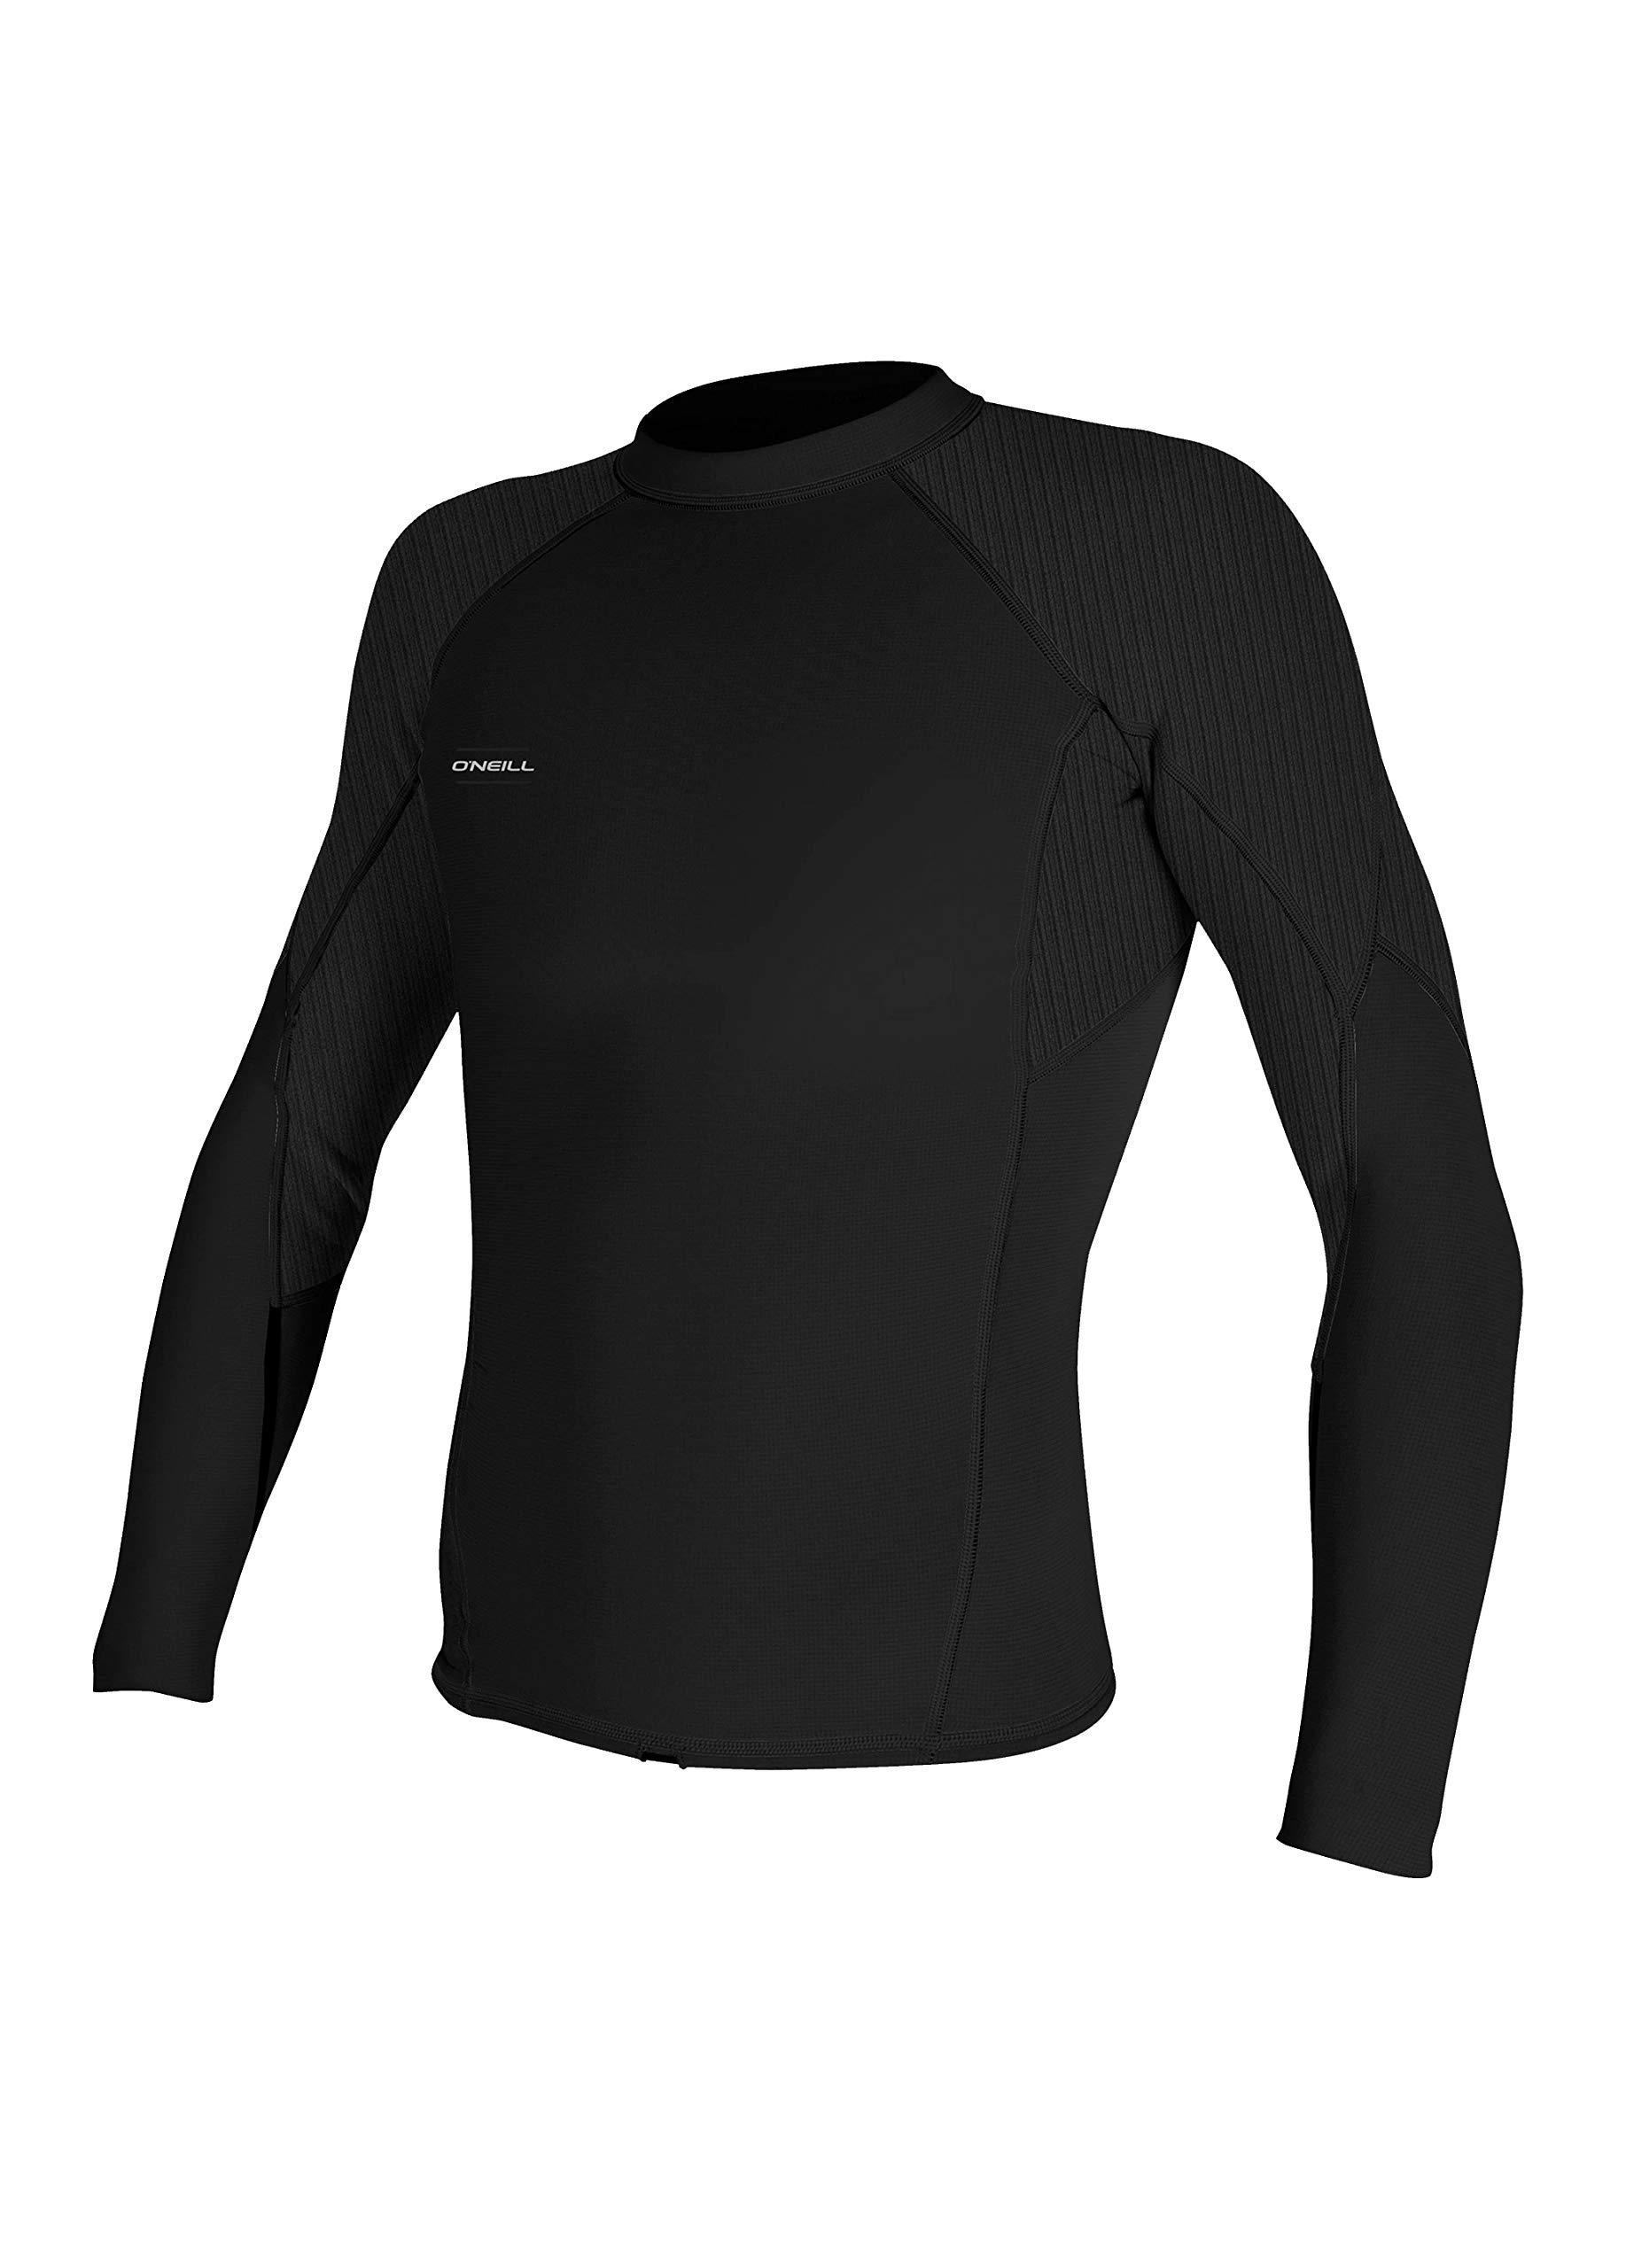 O'Neill Men's Hyperfreak 1.5mm Long Sleeve Top, Black/Black, X-Large by O'Neill Wetsuits